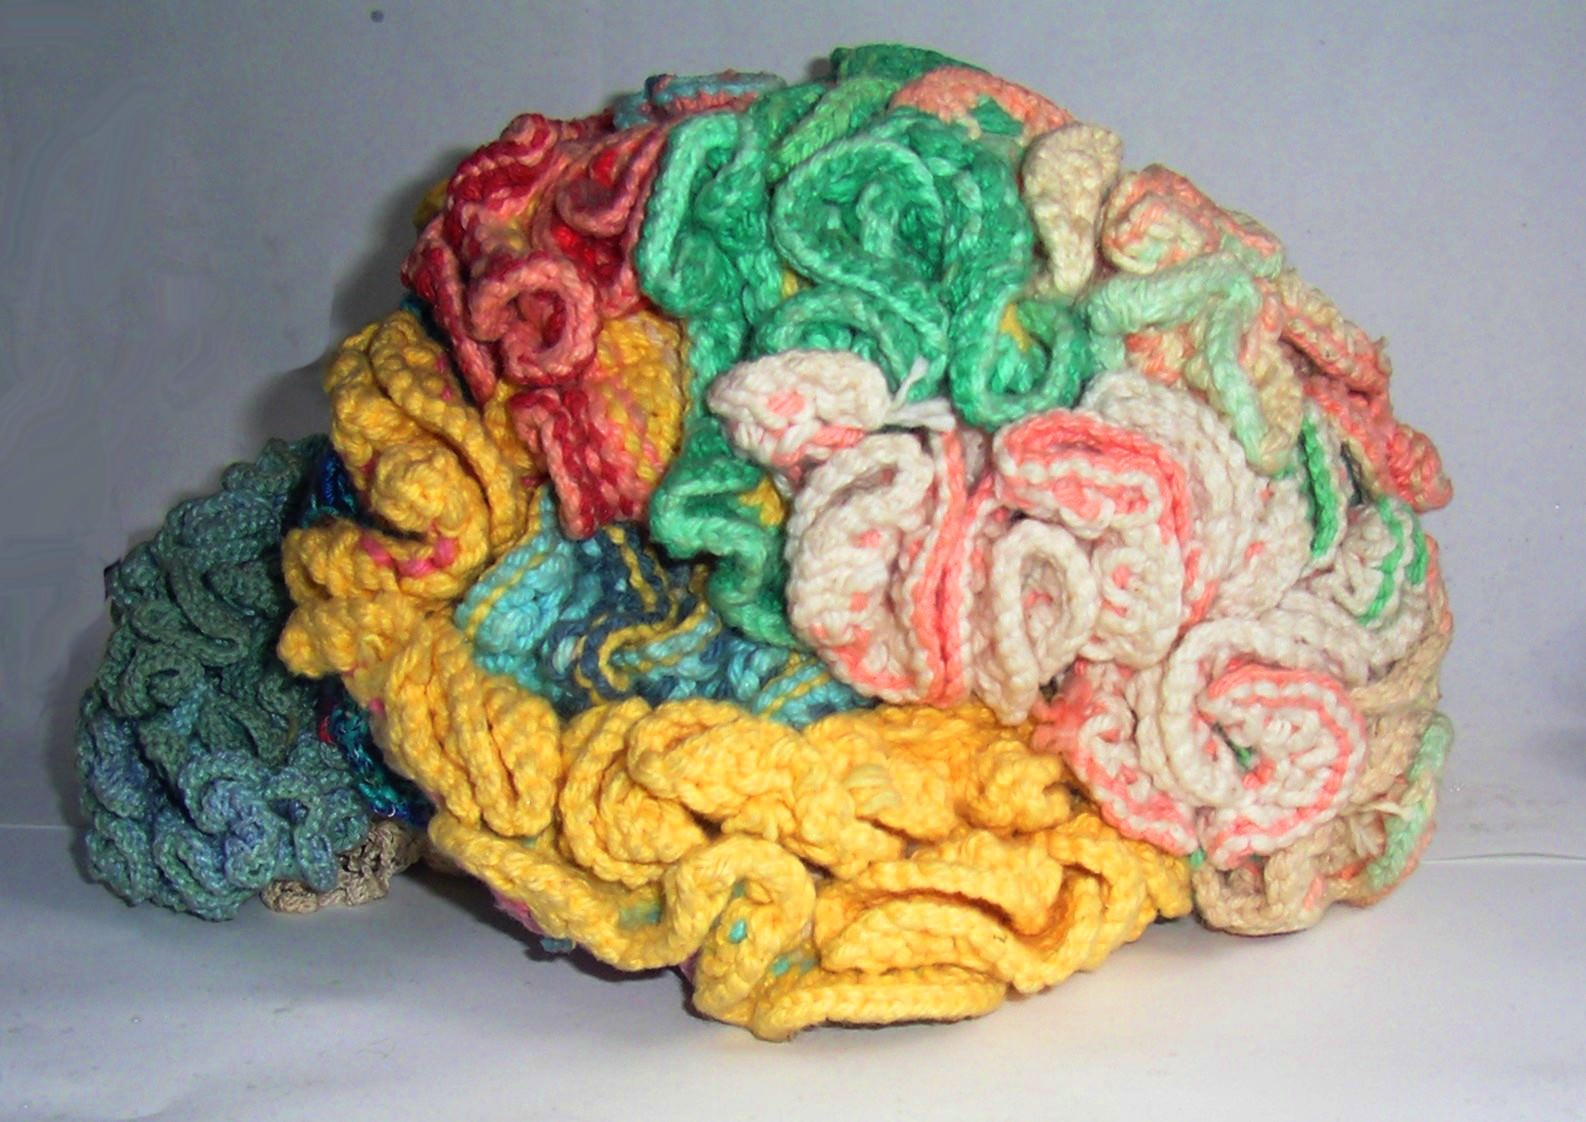 [ 'Knitted brain', Karen Norberg ]